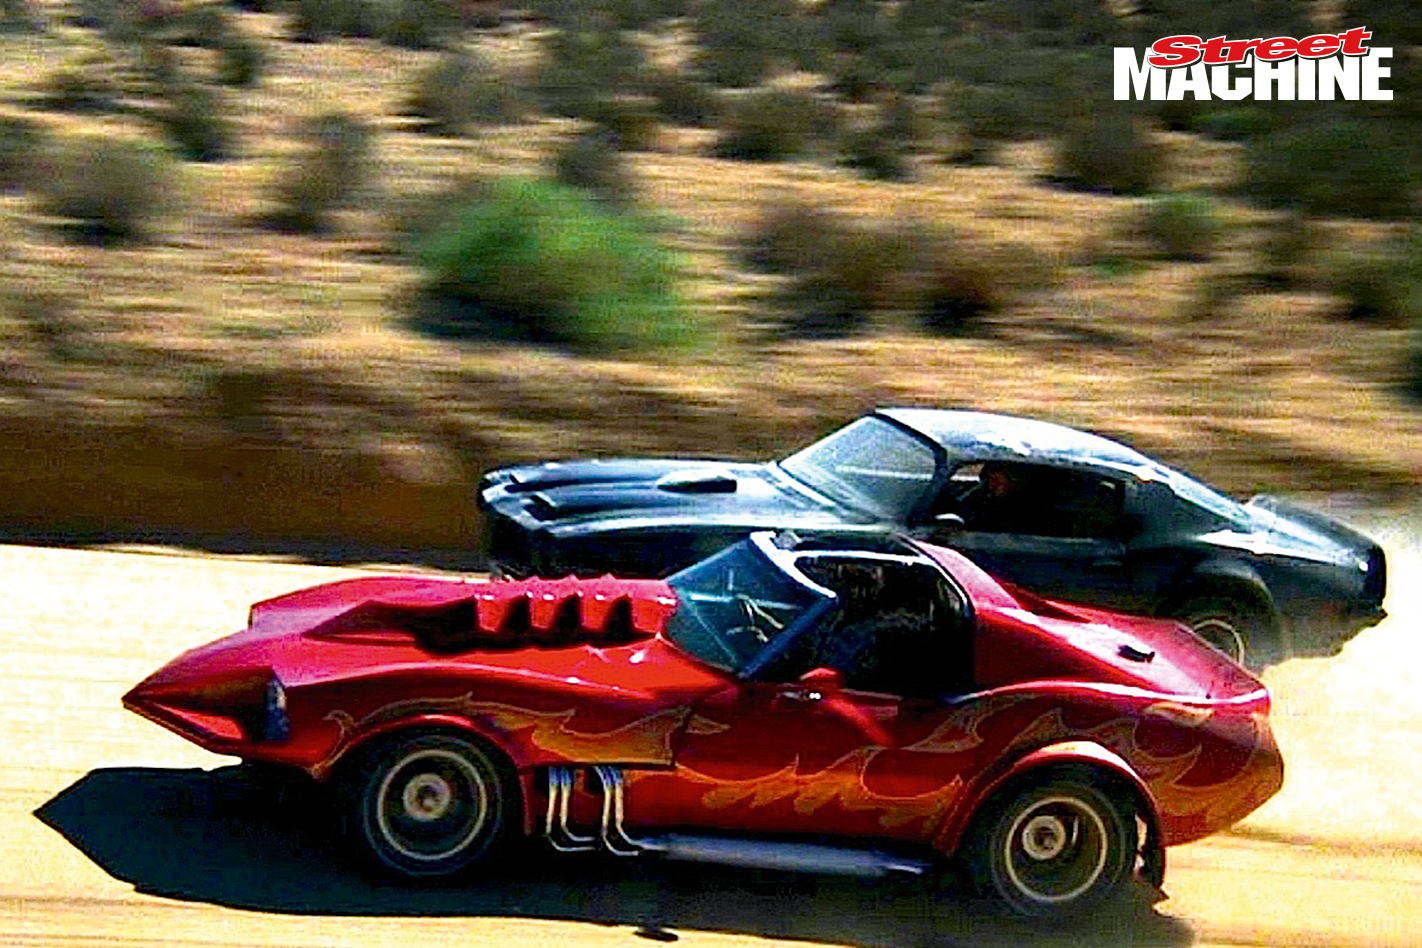 Corvette Summer 1978 Ripper Car Movies Street Machine